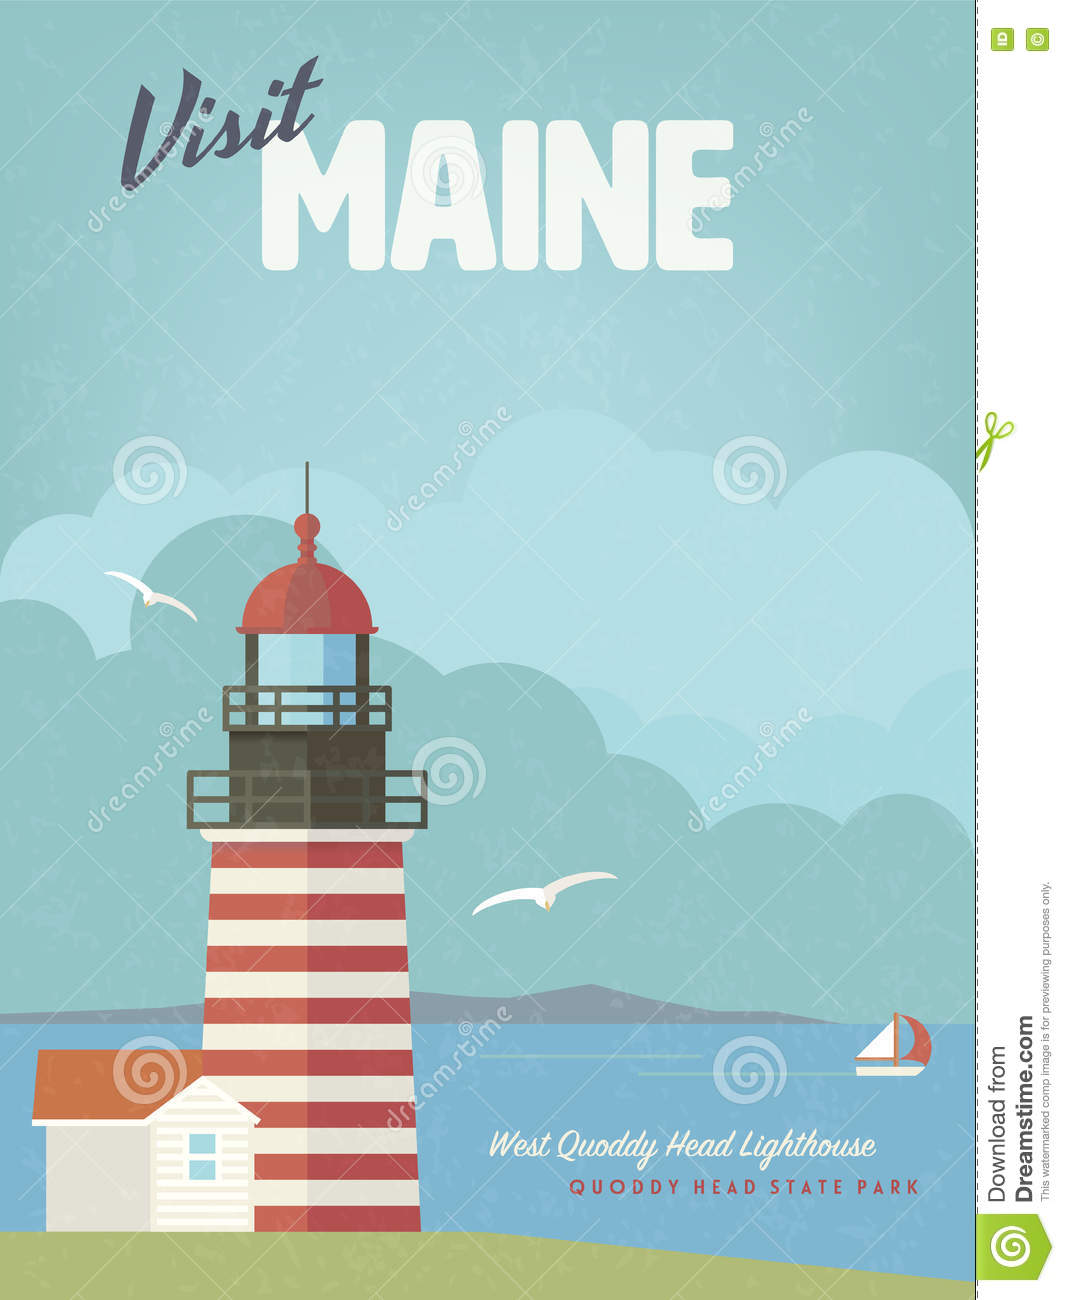 Visit Maine Vintage Poster With West Quoddy Head Lighthouse Stock.